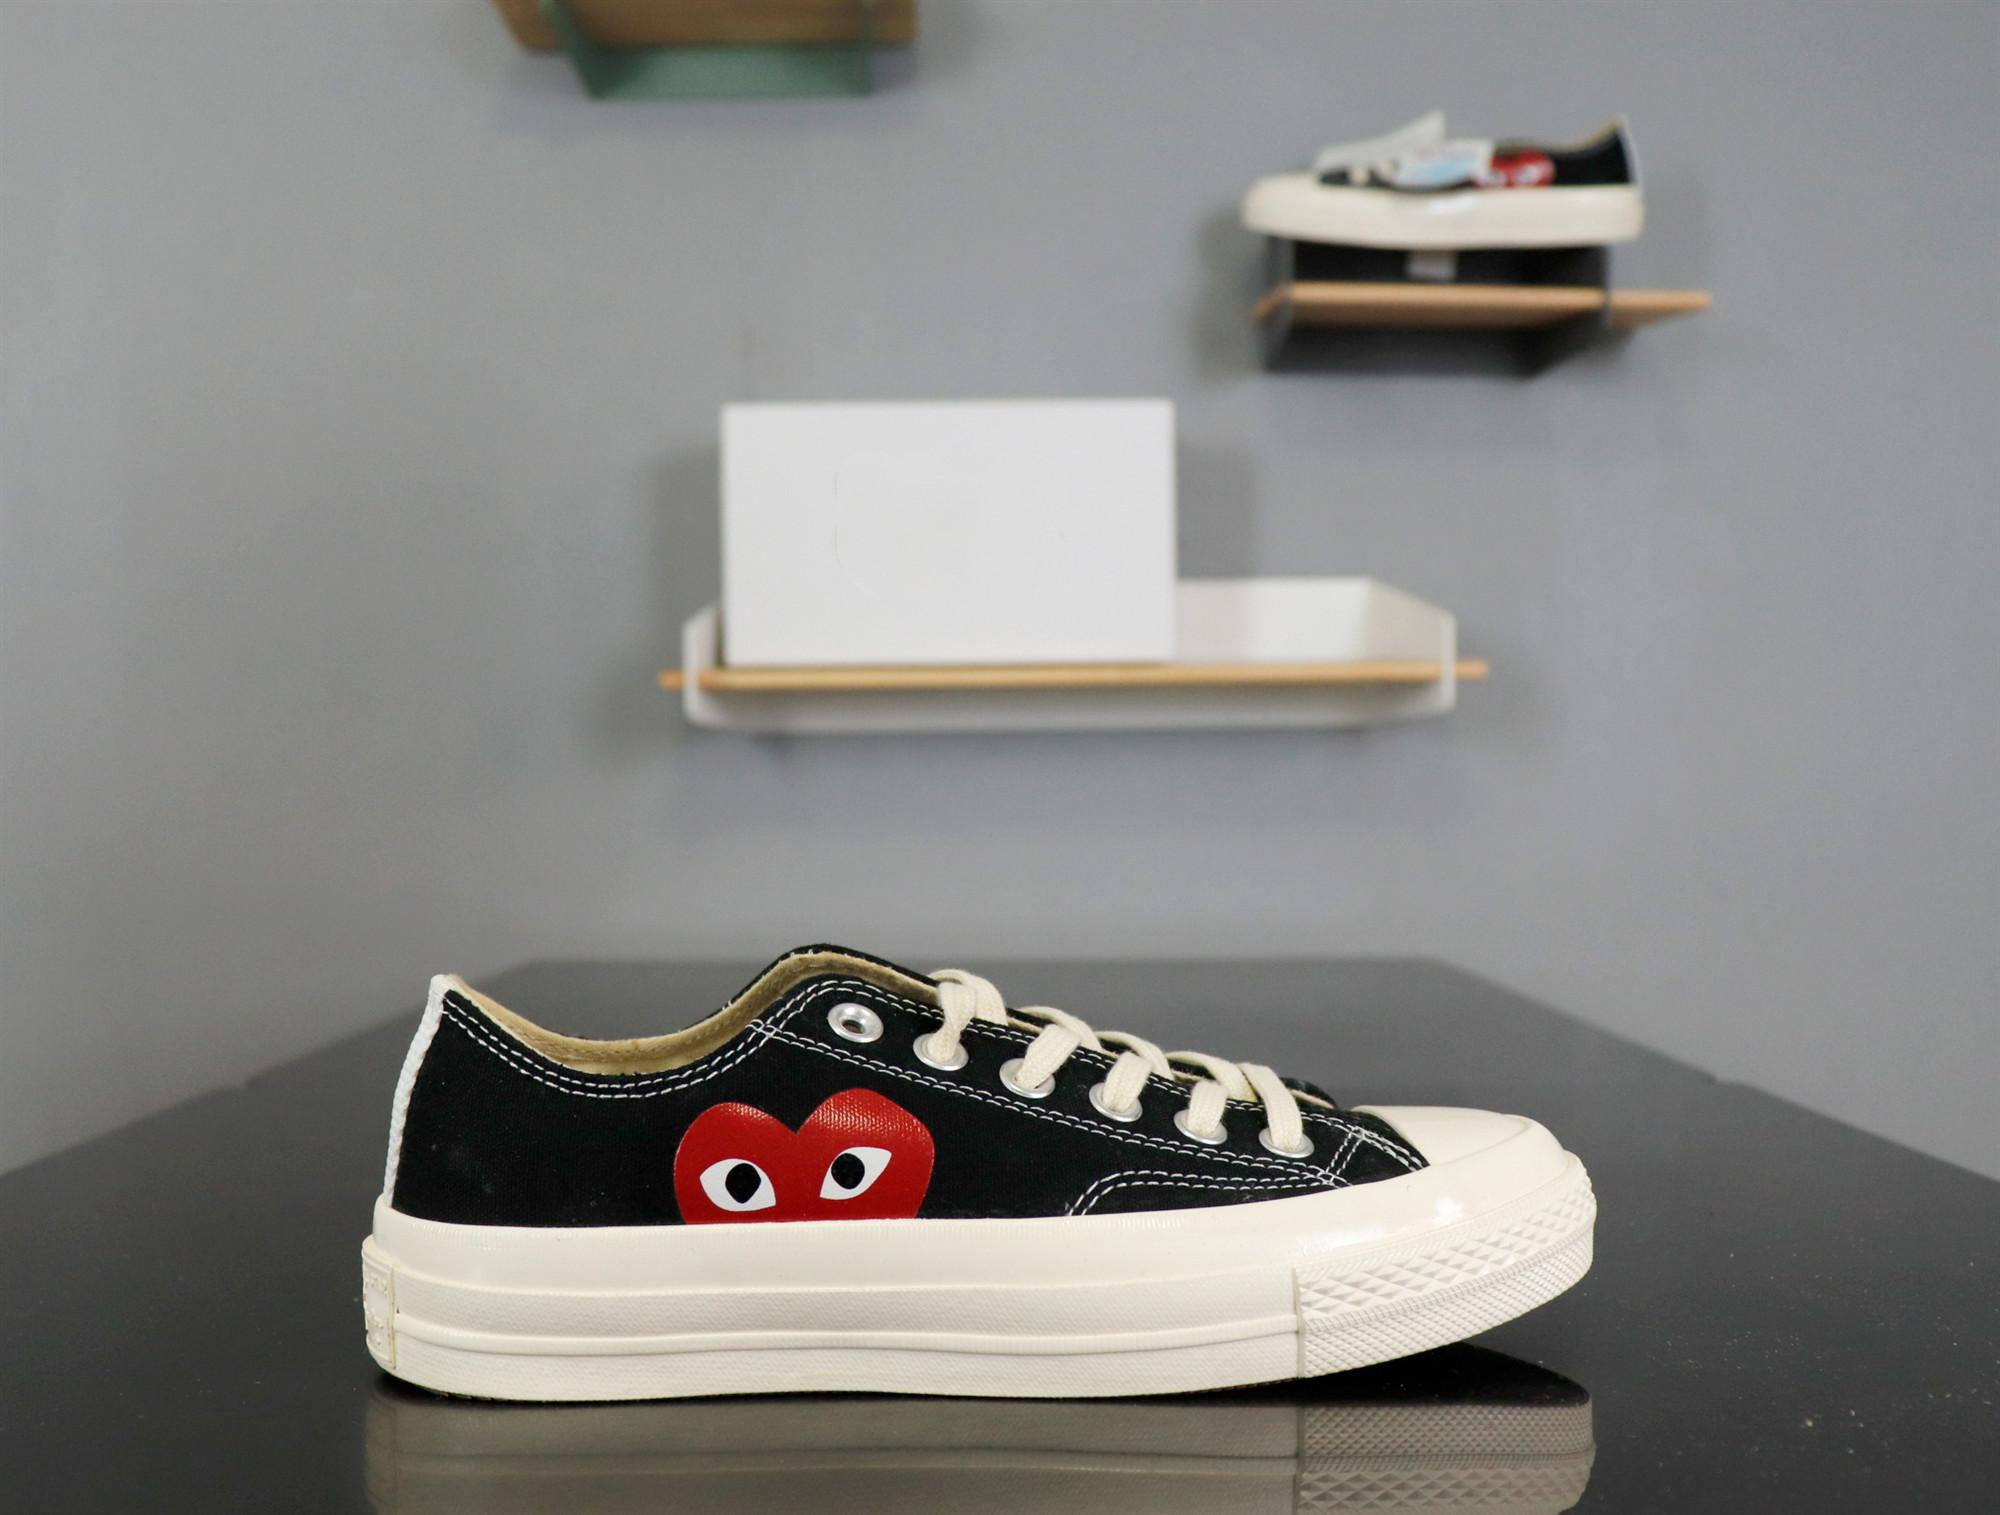 Canvas Skate Shoes Designer Unisex Shoes Spring and Fall Hot Sell Shoes White and Black Available